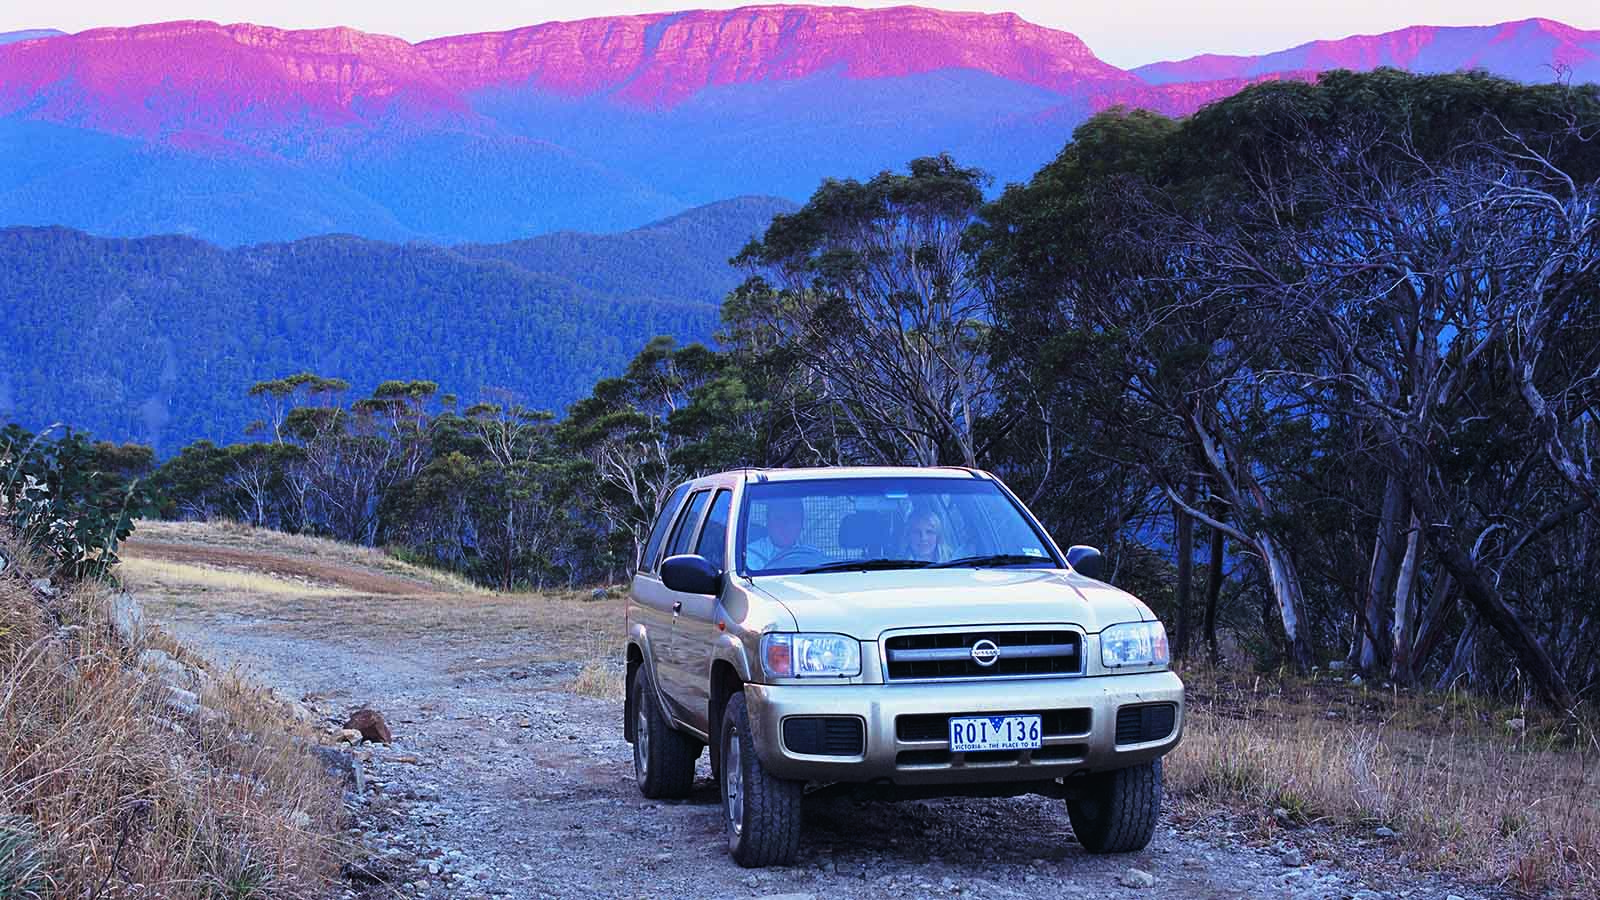 Four wheel driving at Mt Buller, High Country, Victoria, Australia